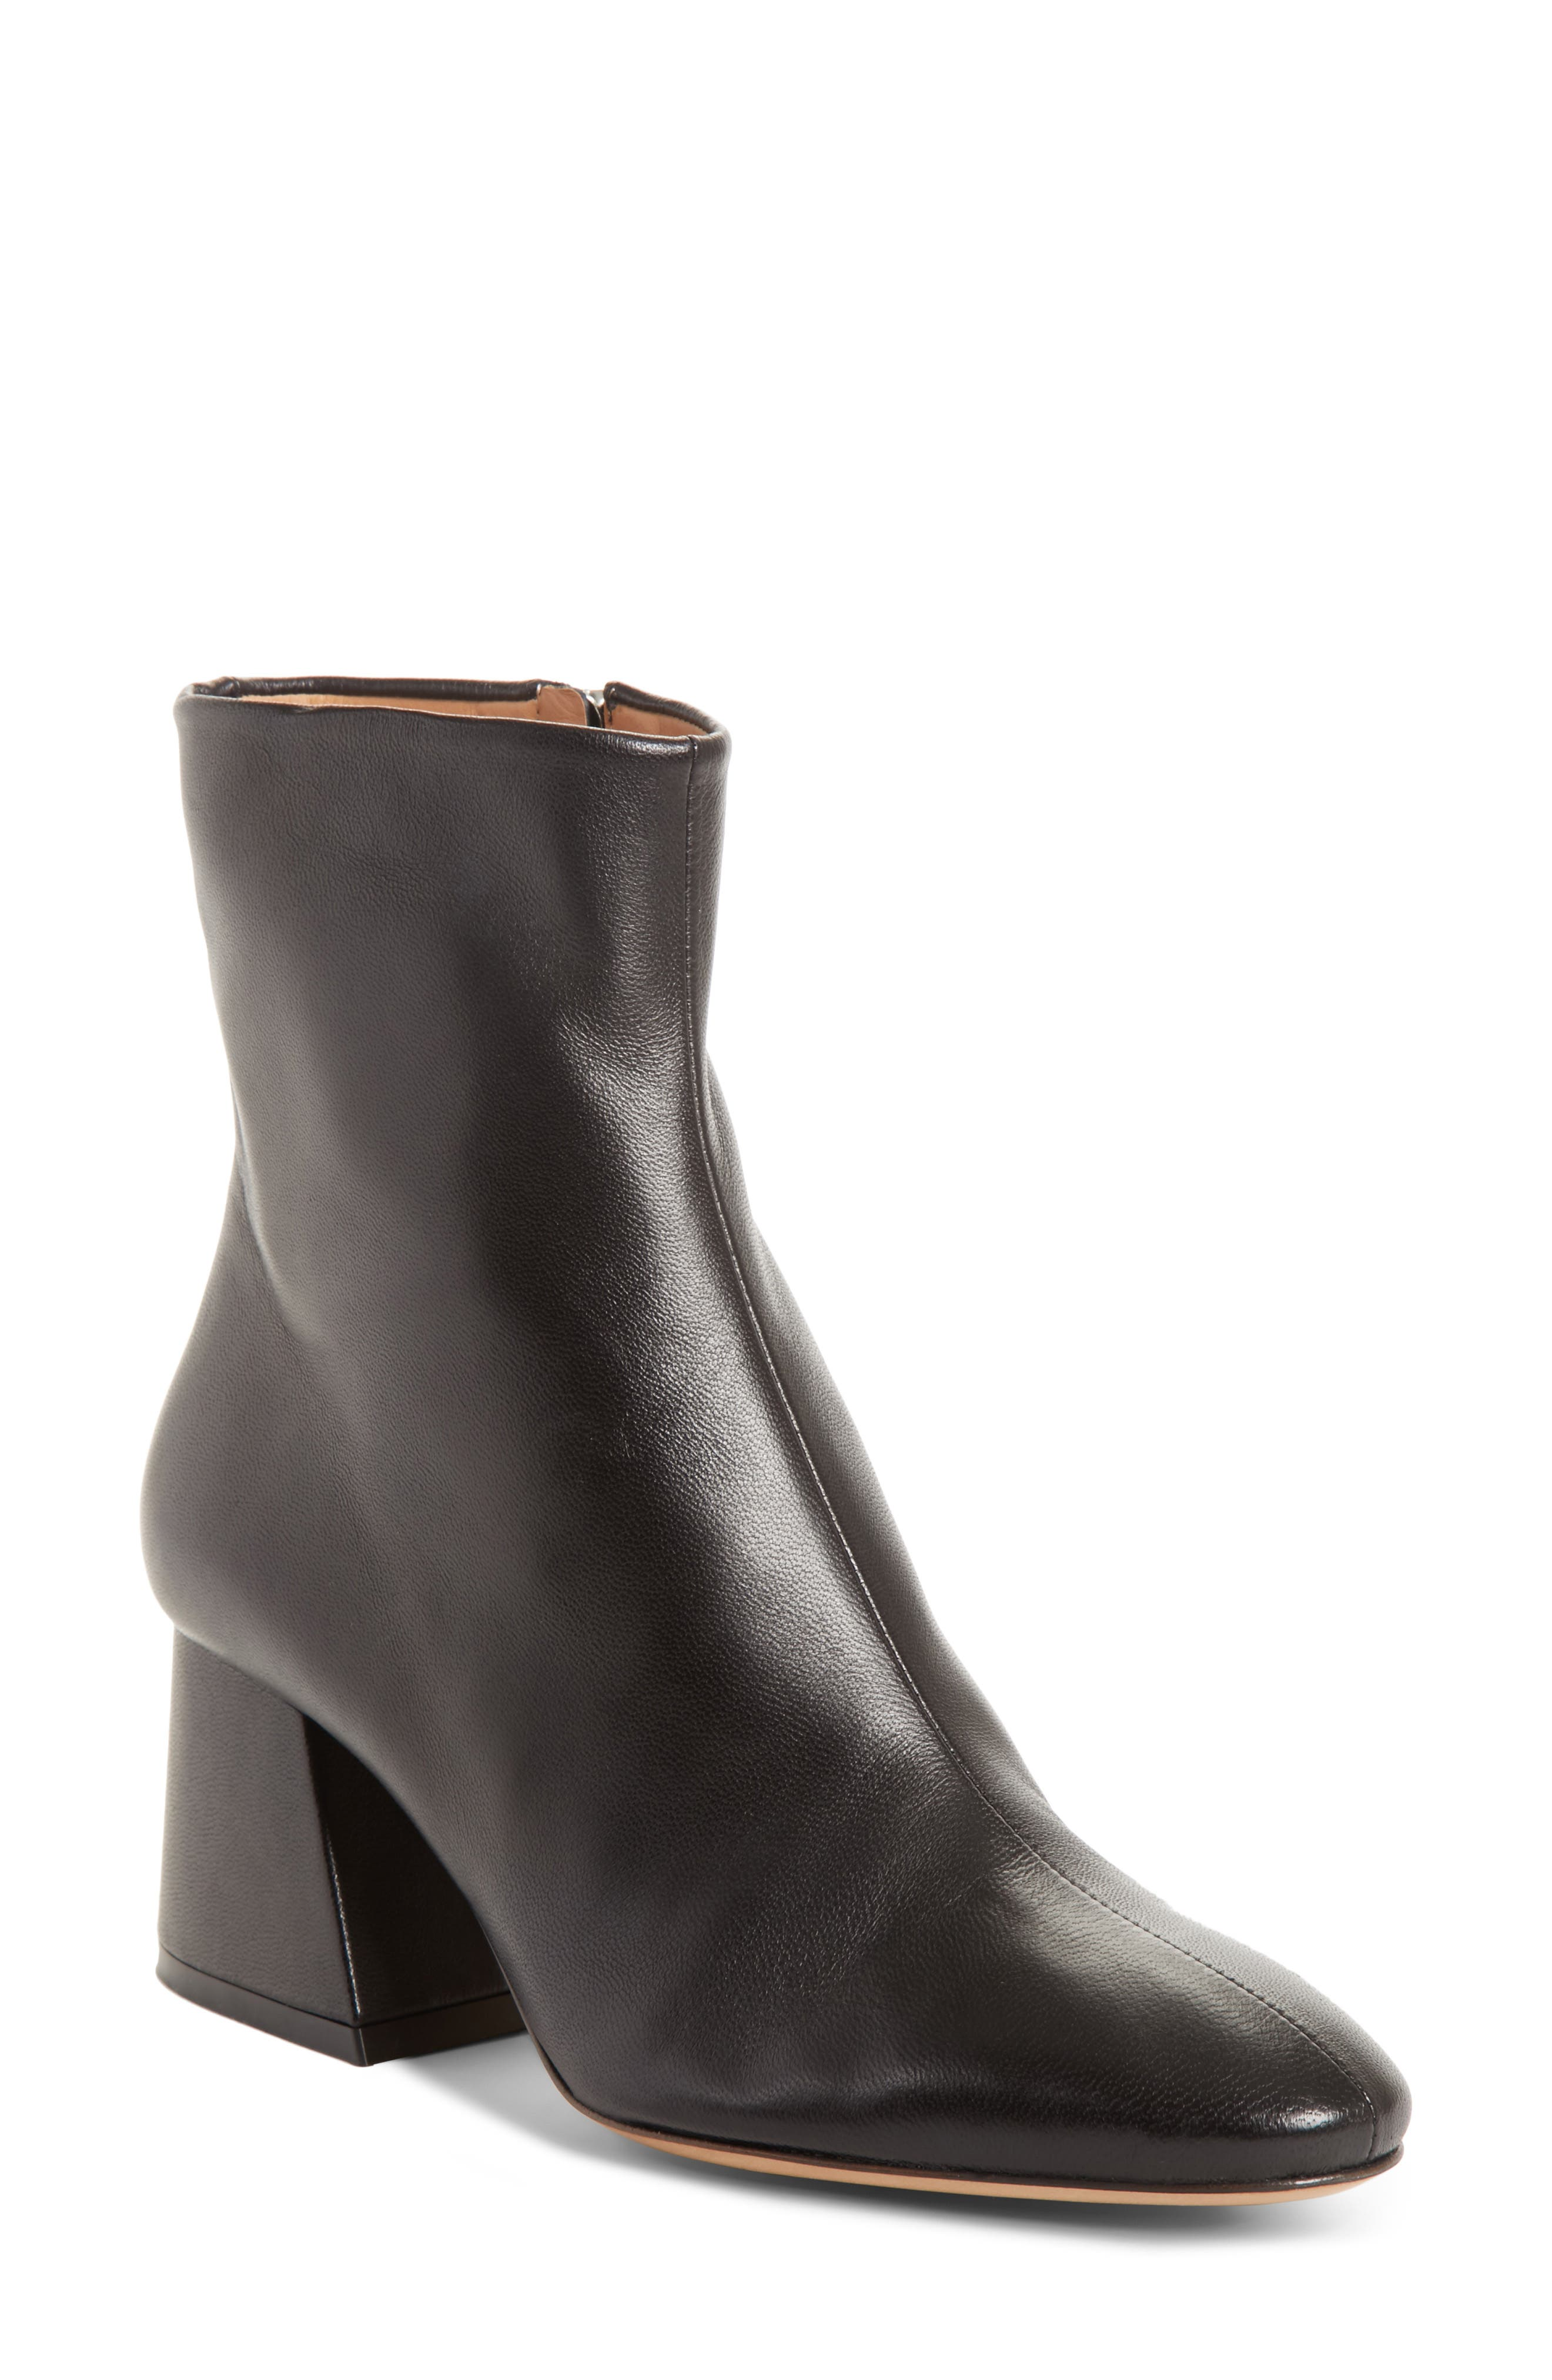 Maison Margiela Flare Heel Ankle Boot (Women)